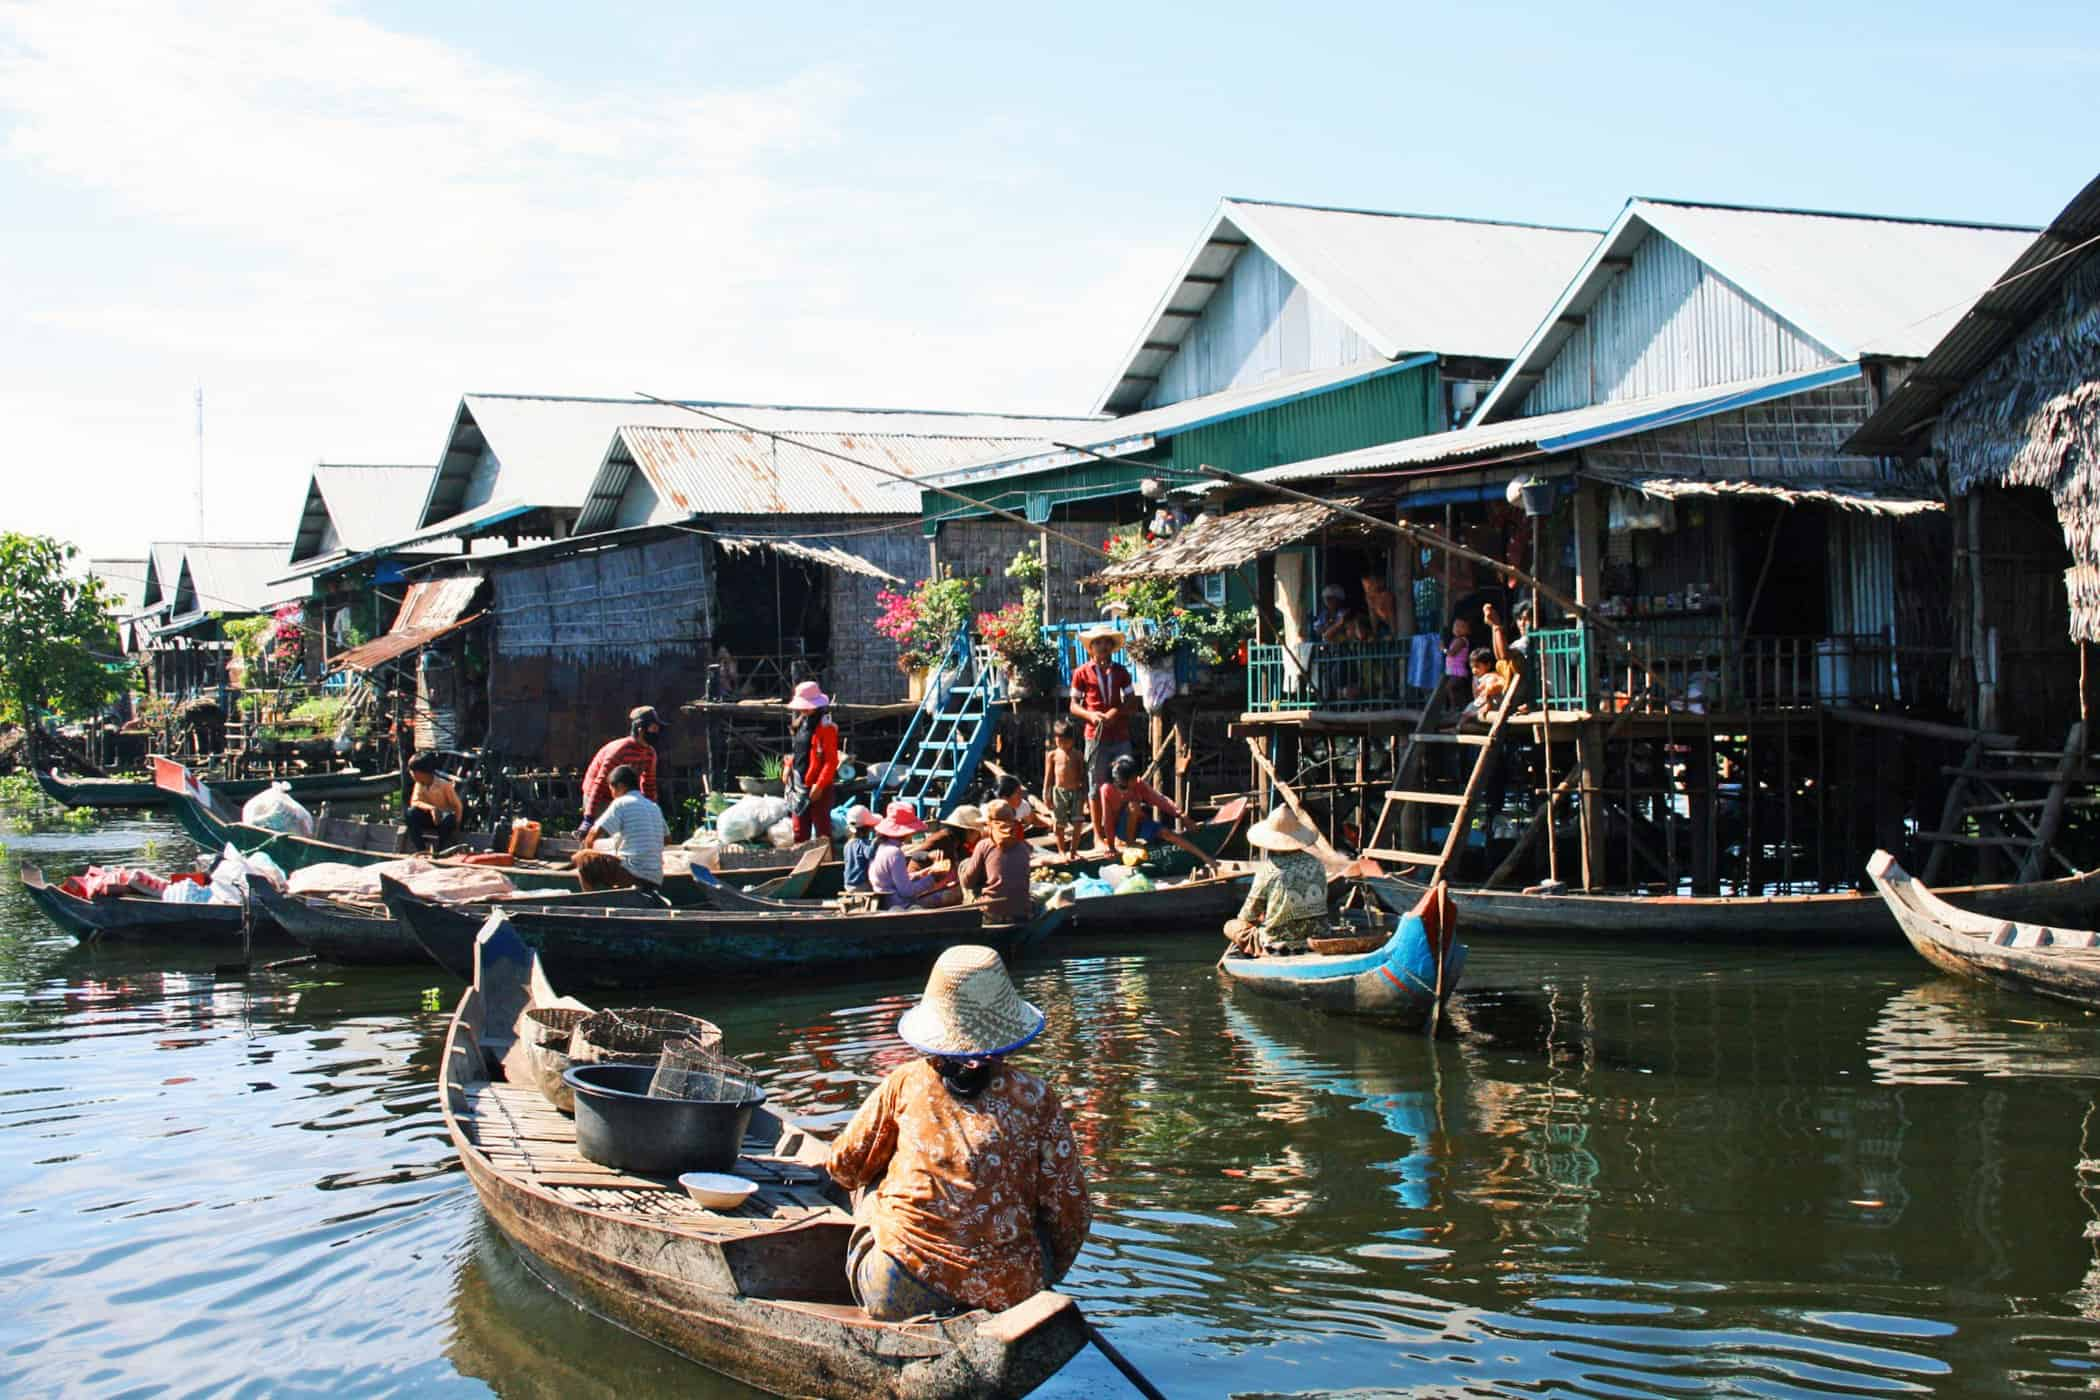 Siem Reap Floating Villages - markets and houses on the Tonle Sap Lake.